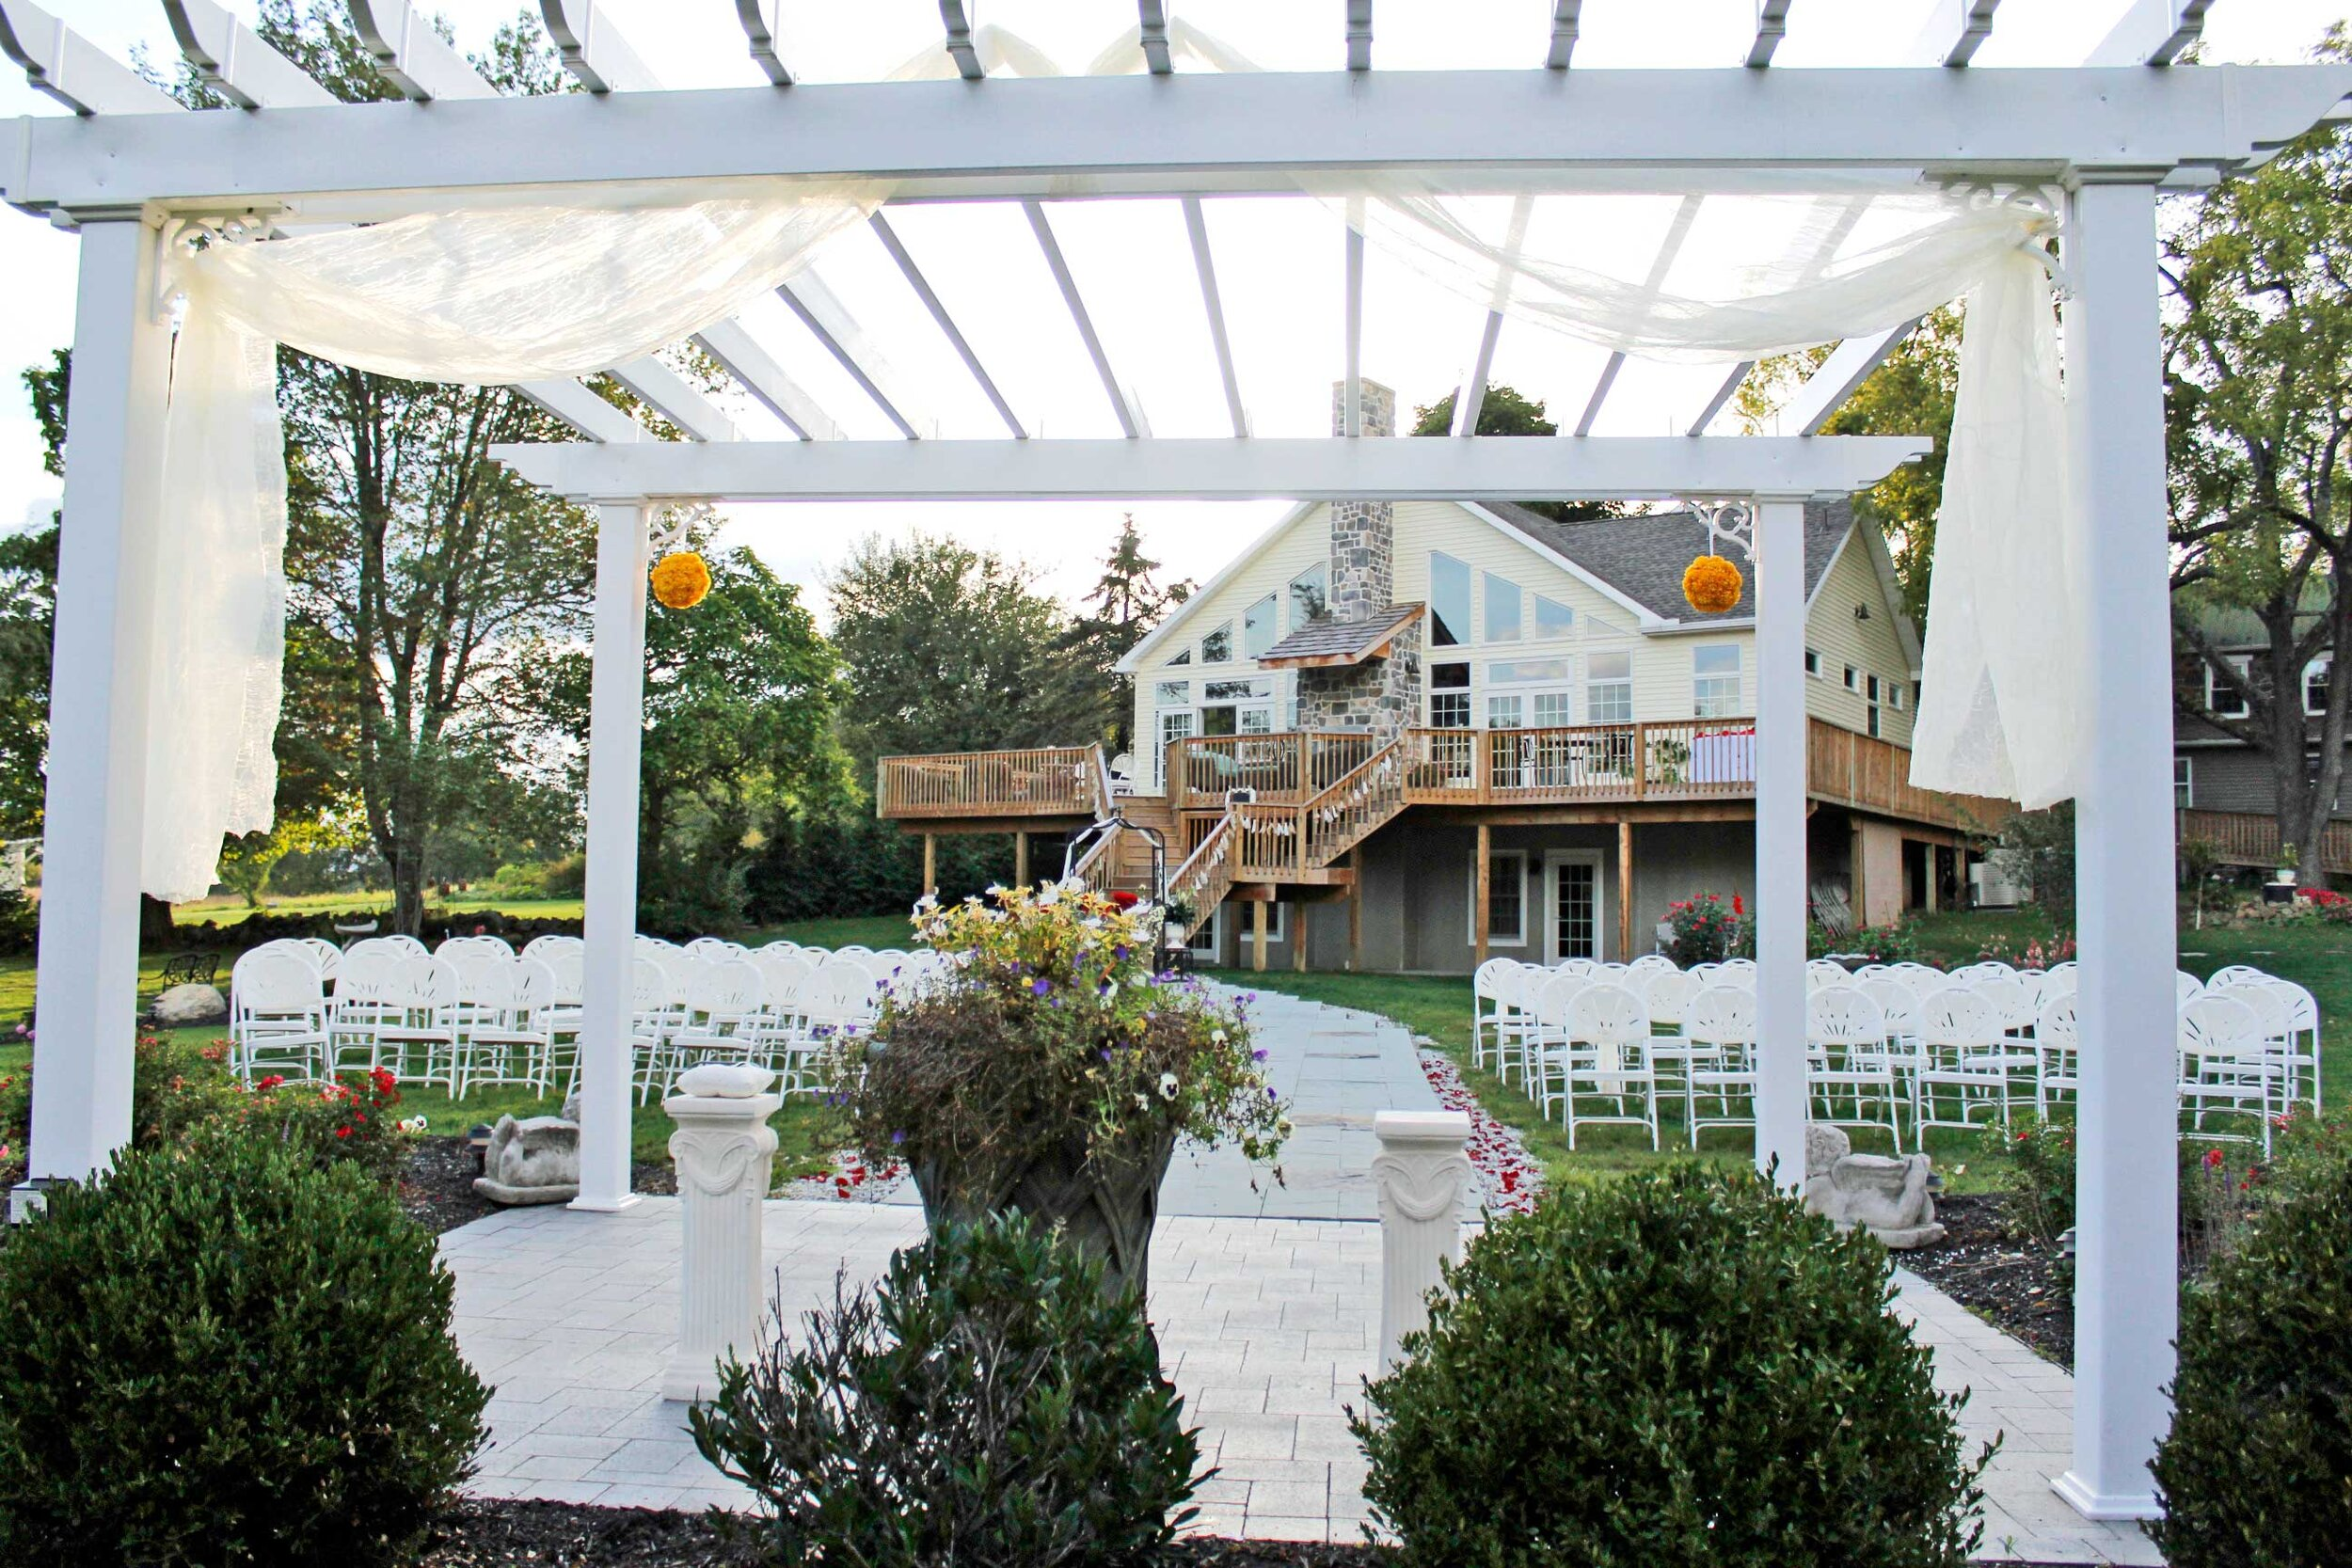 Formal Wedding Garden & Pergola - Make a dramatic entrance from the Solarium staircase to the stone path as your beloved awaits you at the pergola.